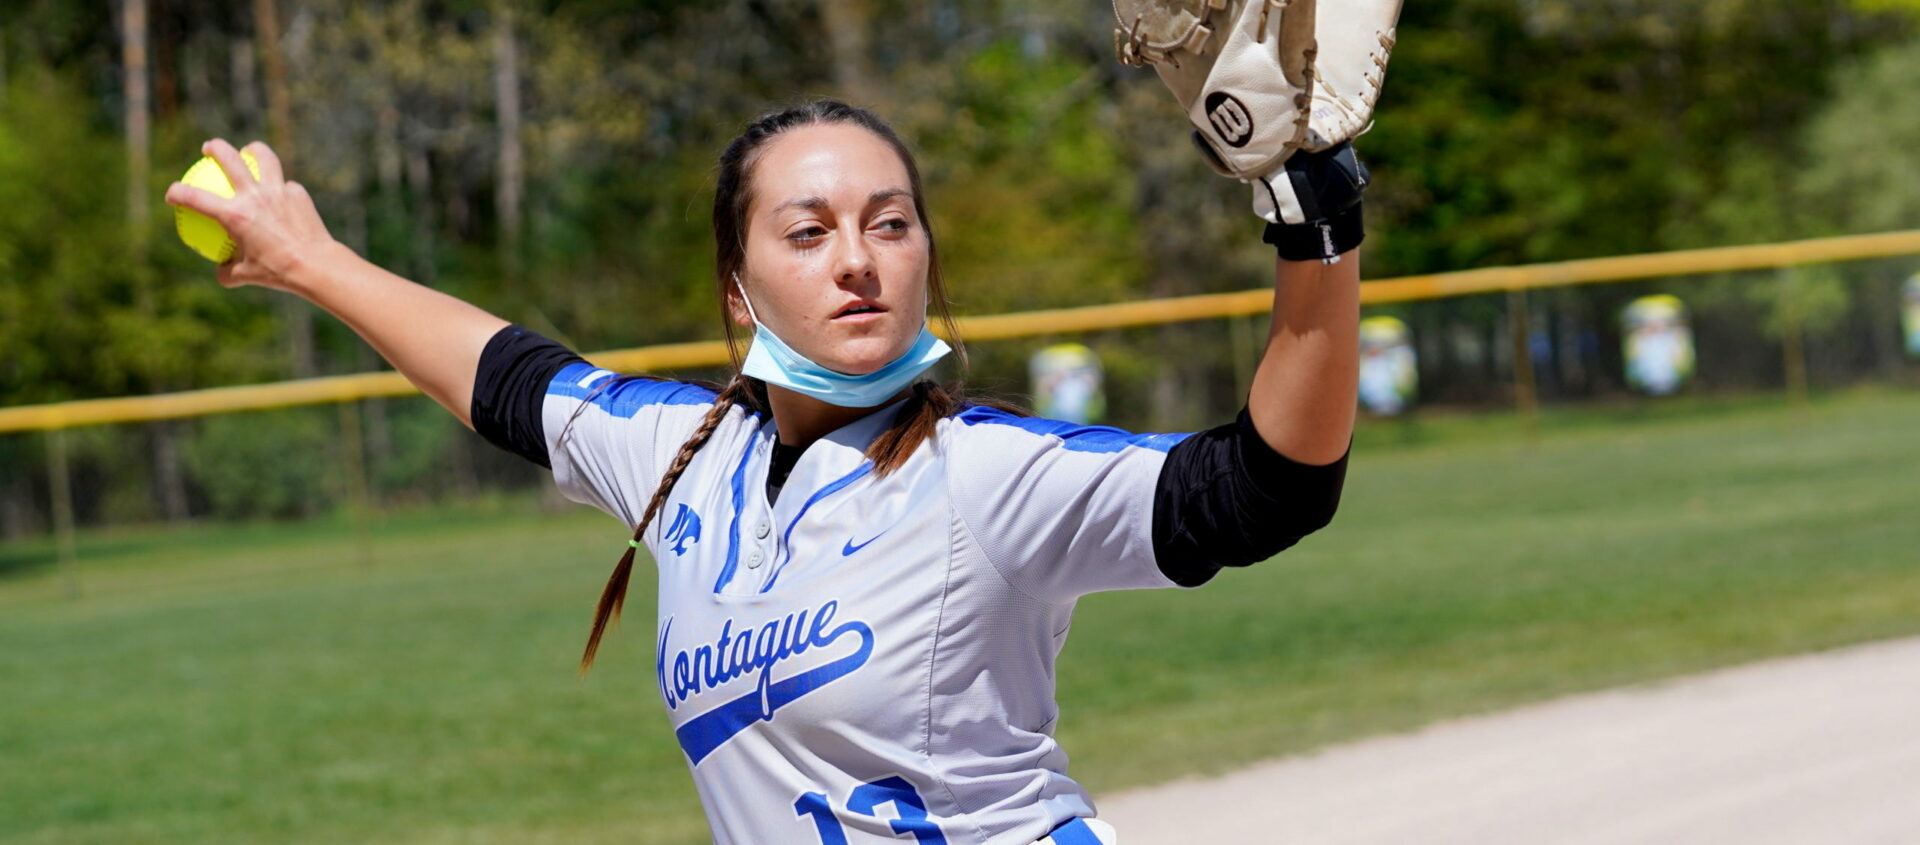 Montague's ace in the classroom and on the mound: Ivy League-bound Bailey Belinger leads area in strikeouts and ERA